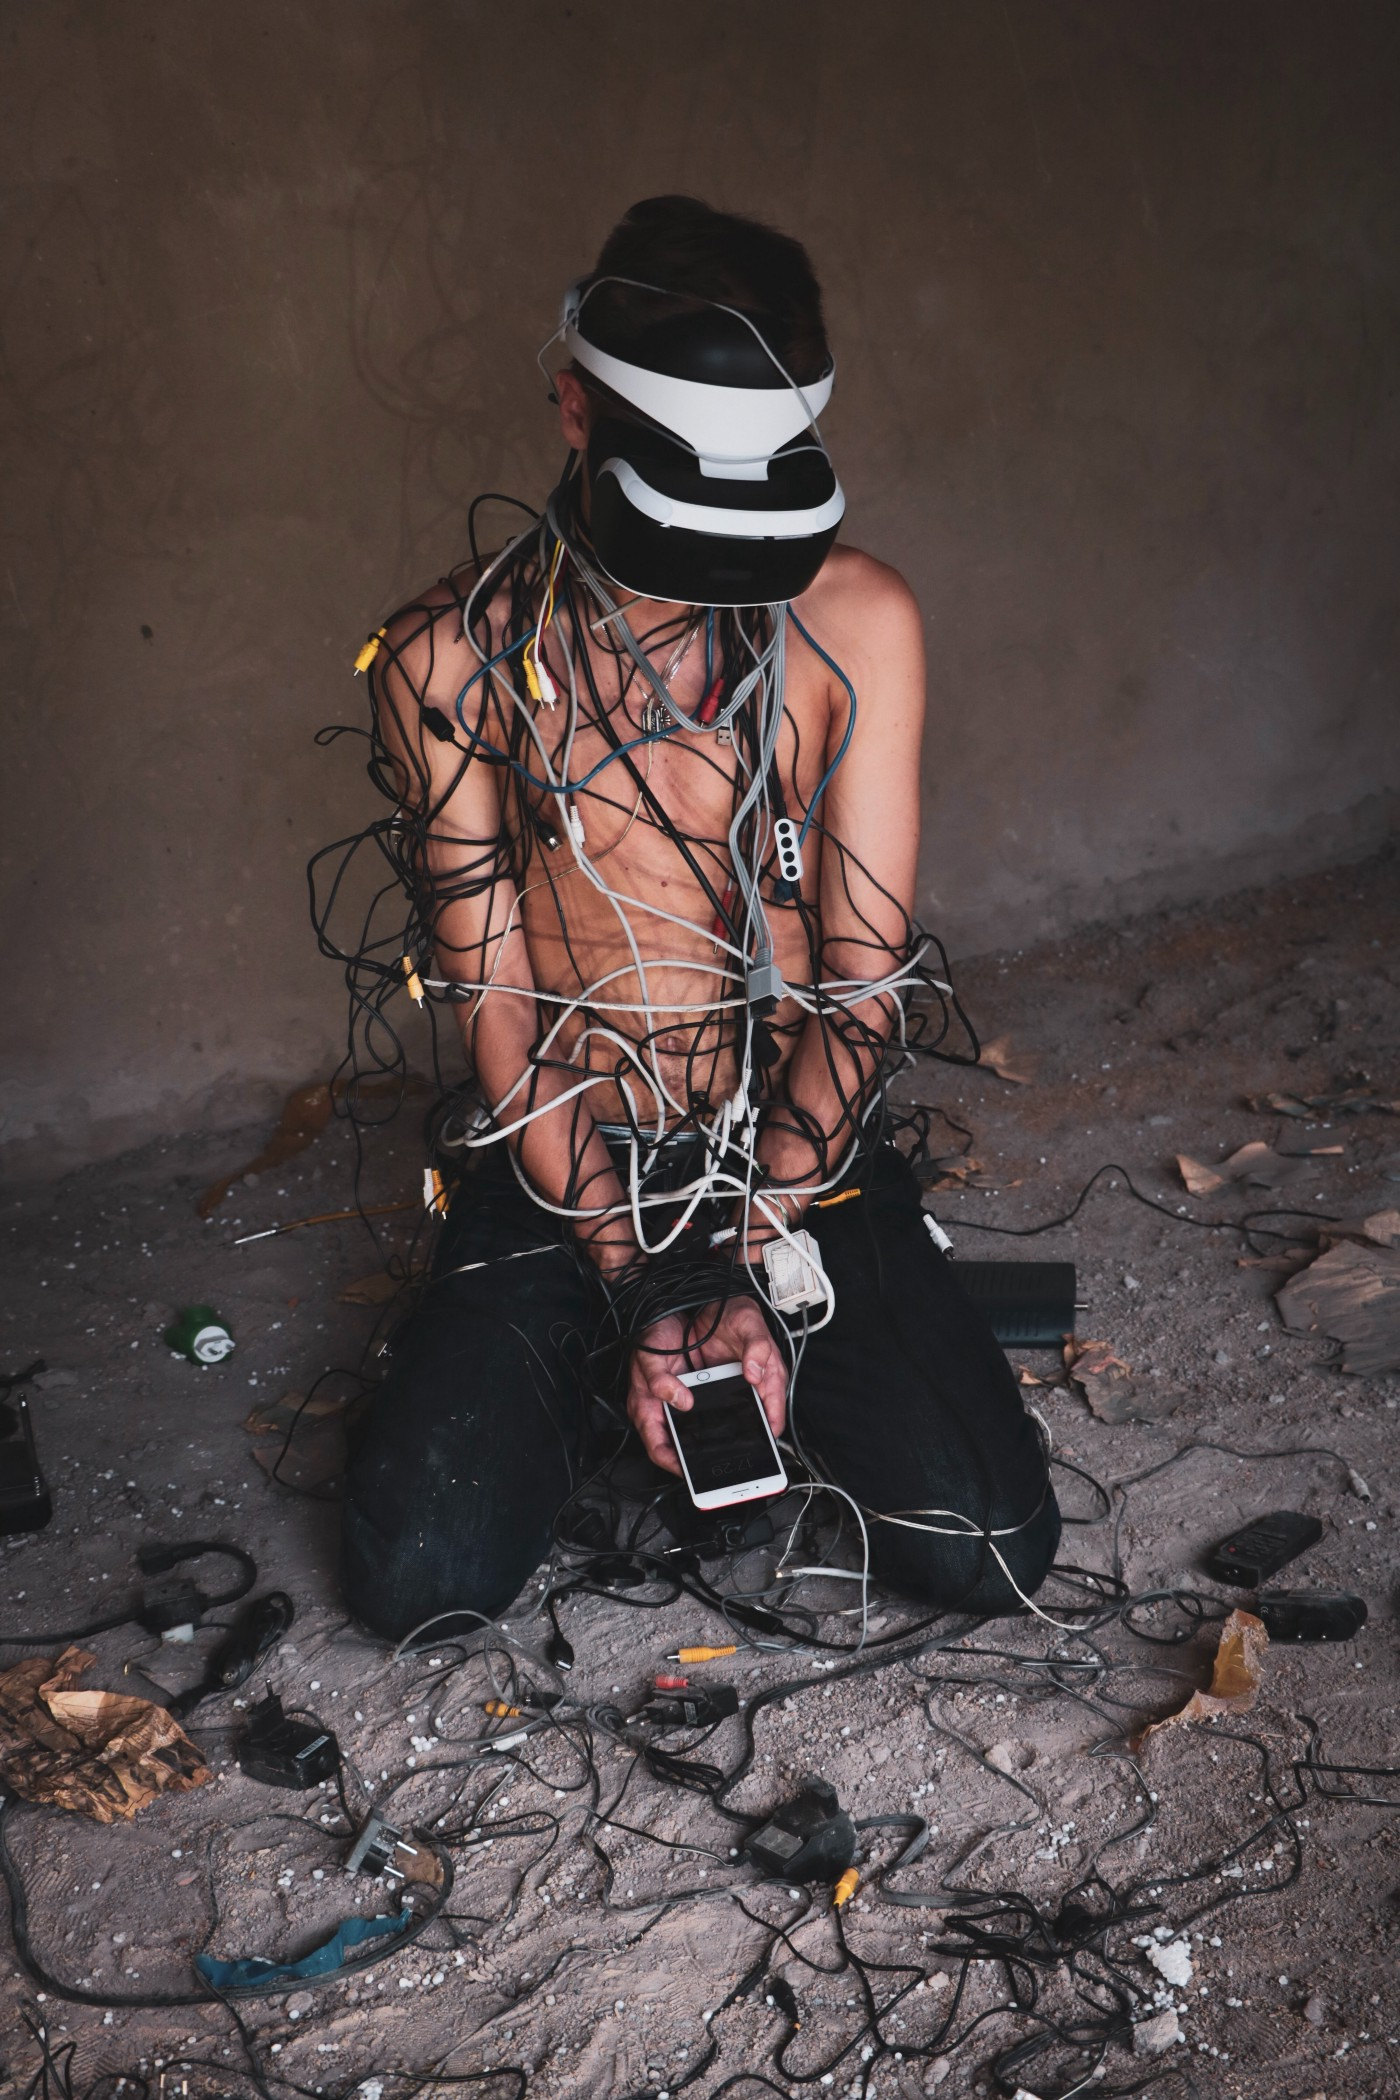 a person wearing a headset and entangled in cables